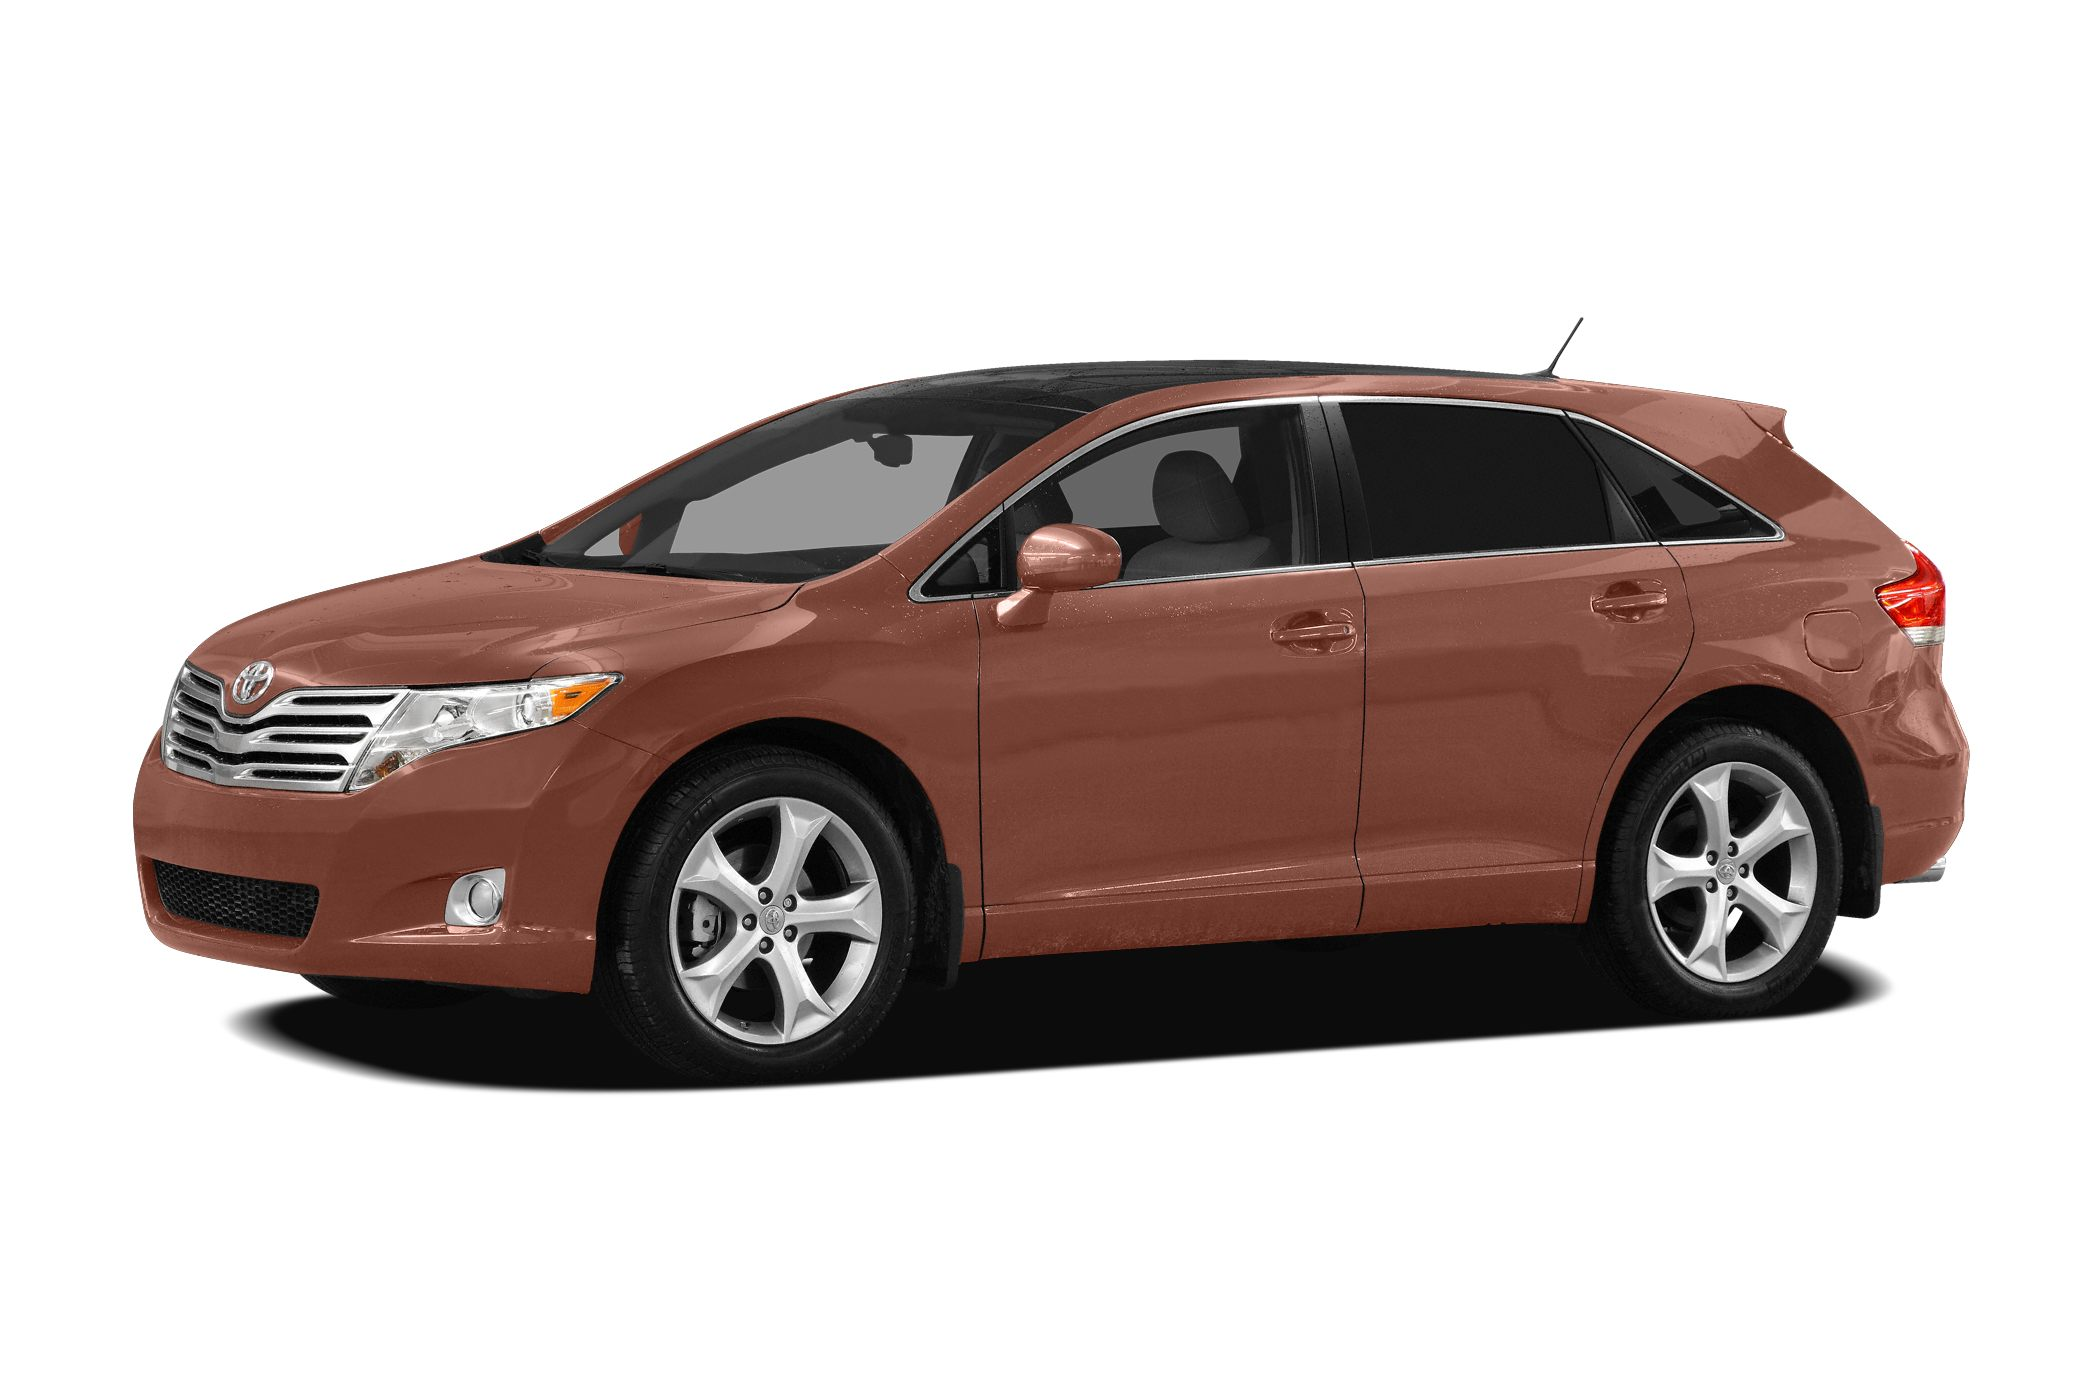 2009 Toyota Venza Base Auto Check 1 Owner COMPLIMENTARY ROYAL SHIELD VEHICLE LIMITED WARRANTY